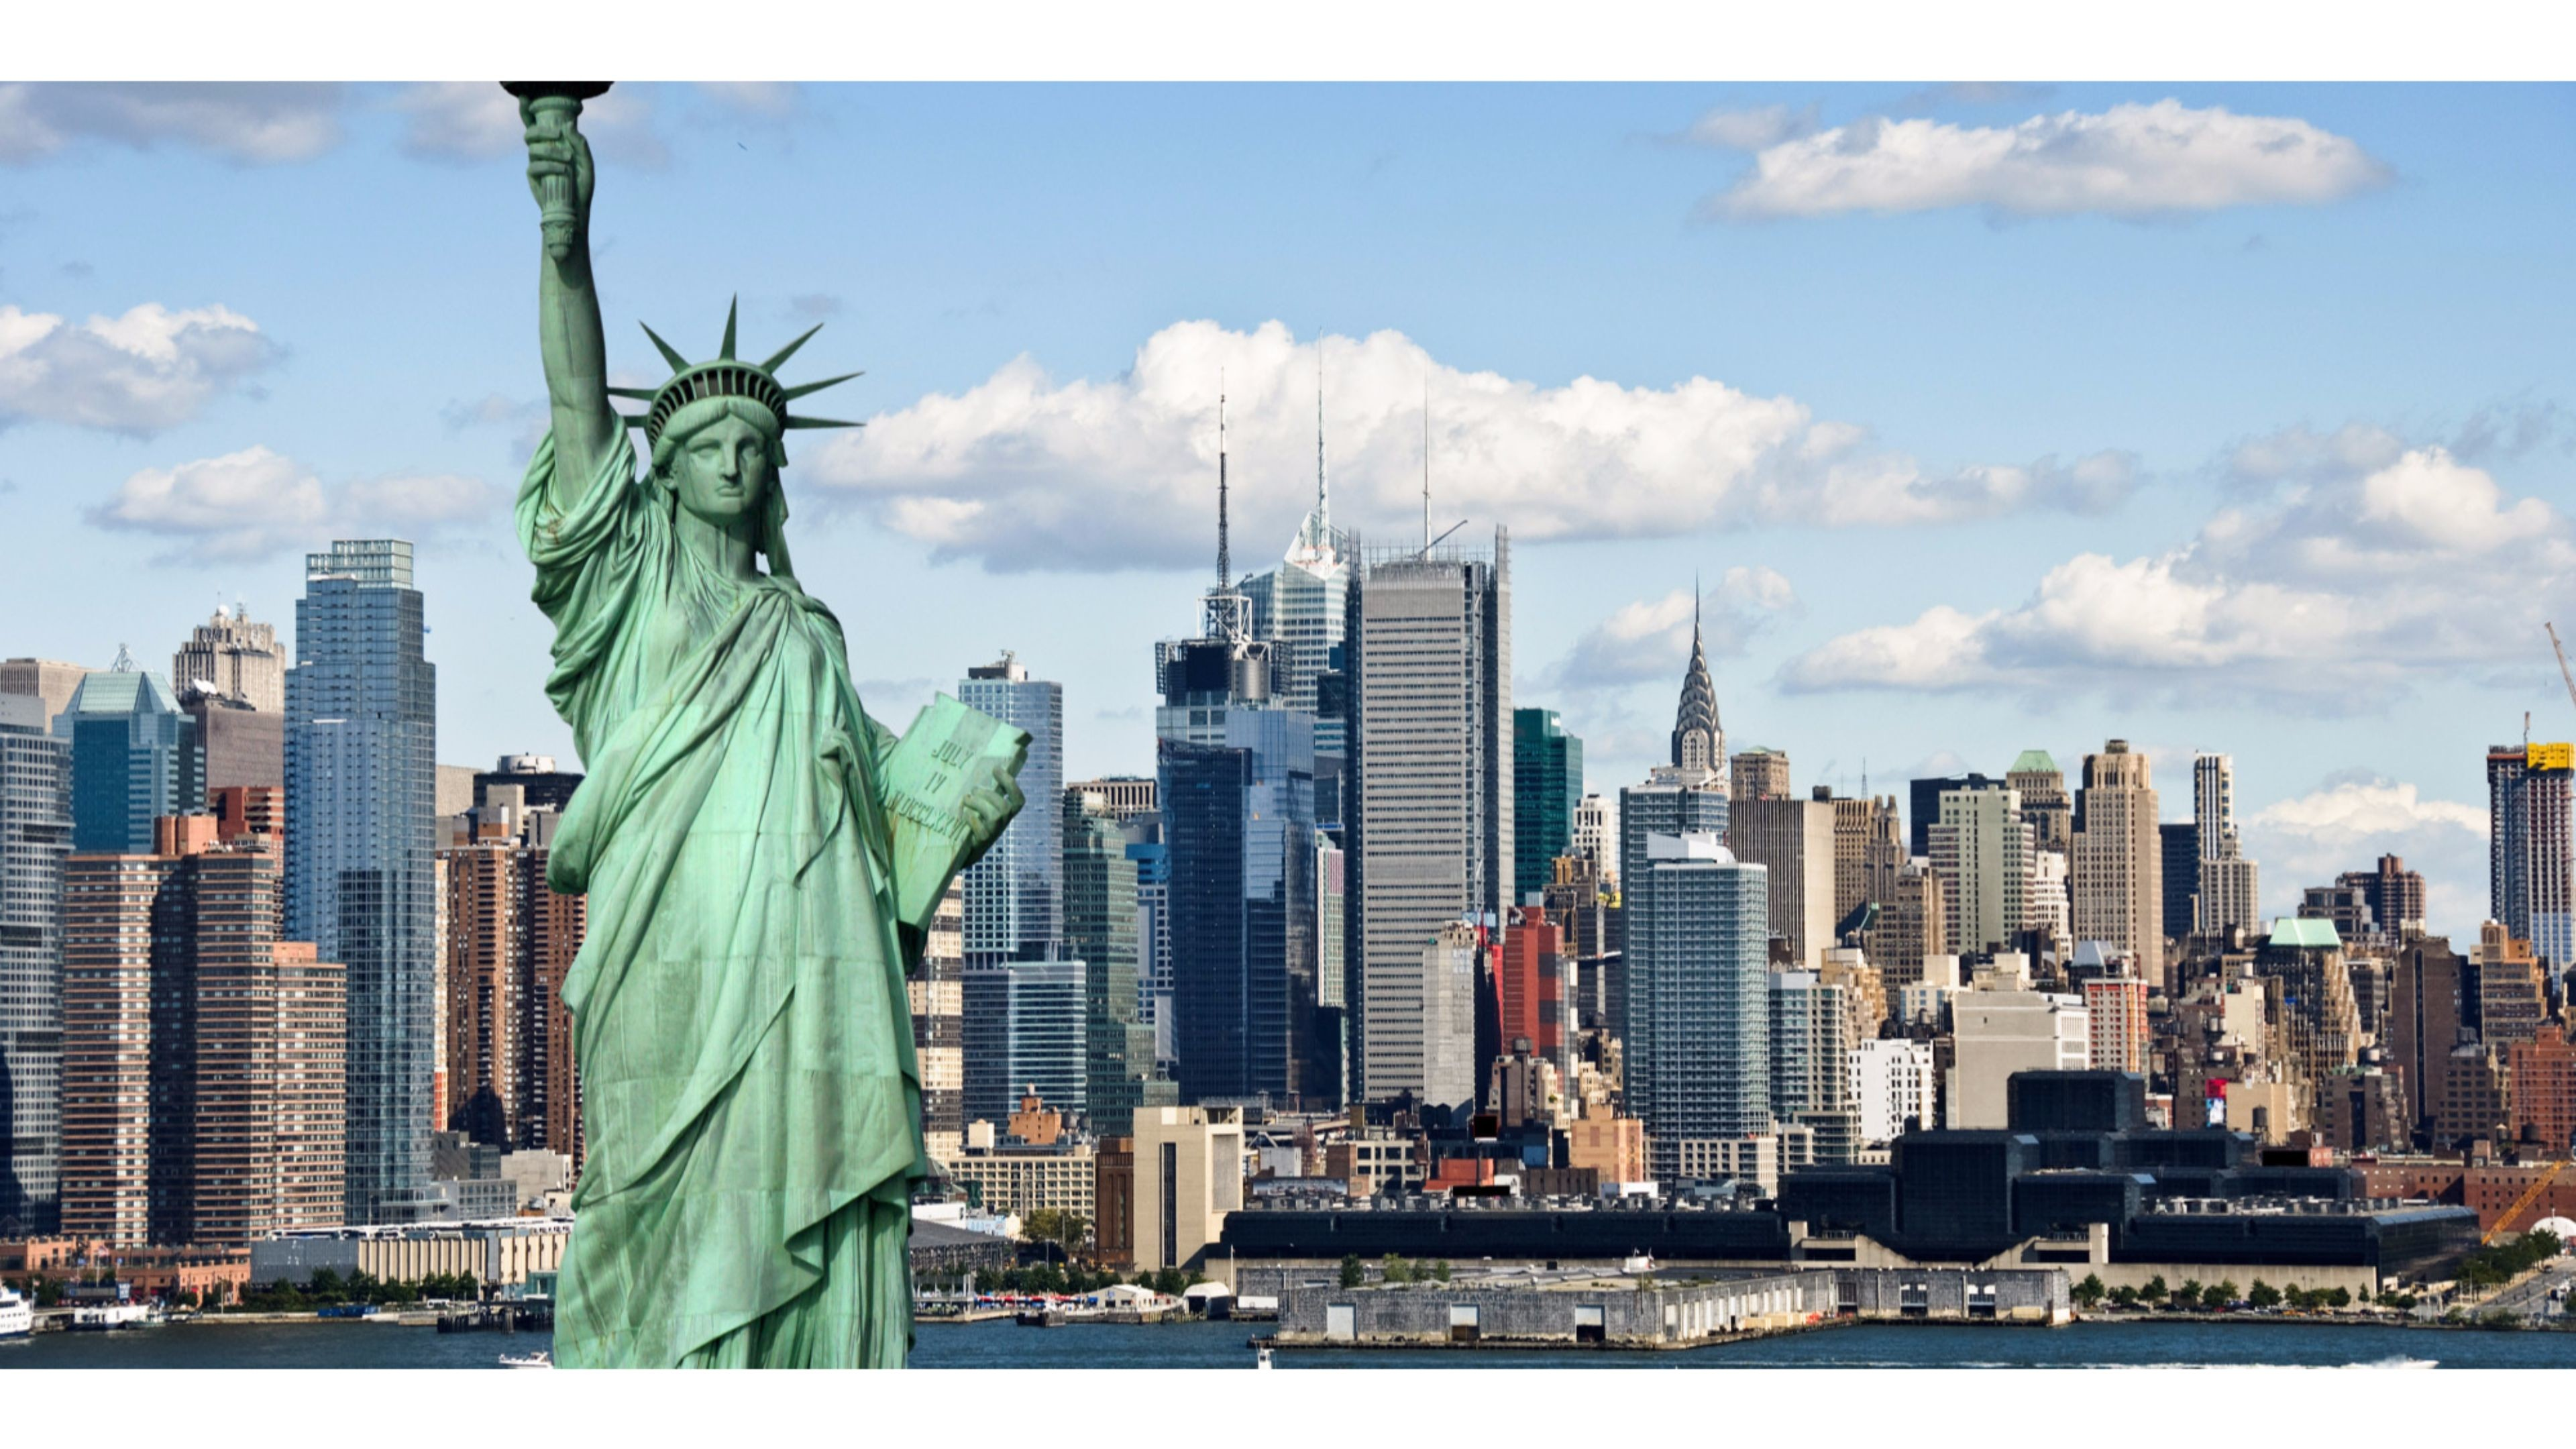 Statue of Liberty New York City 4K Wallpaper